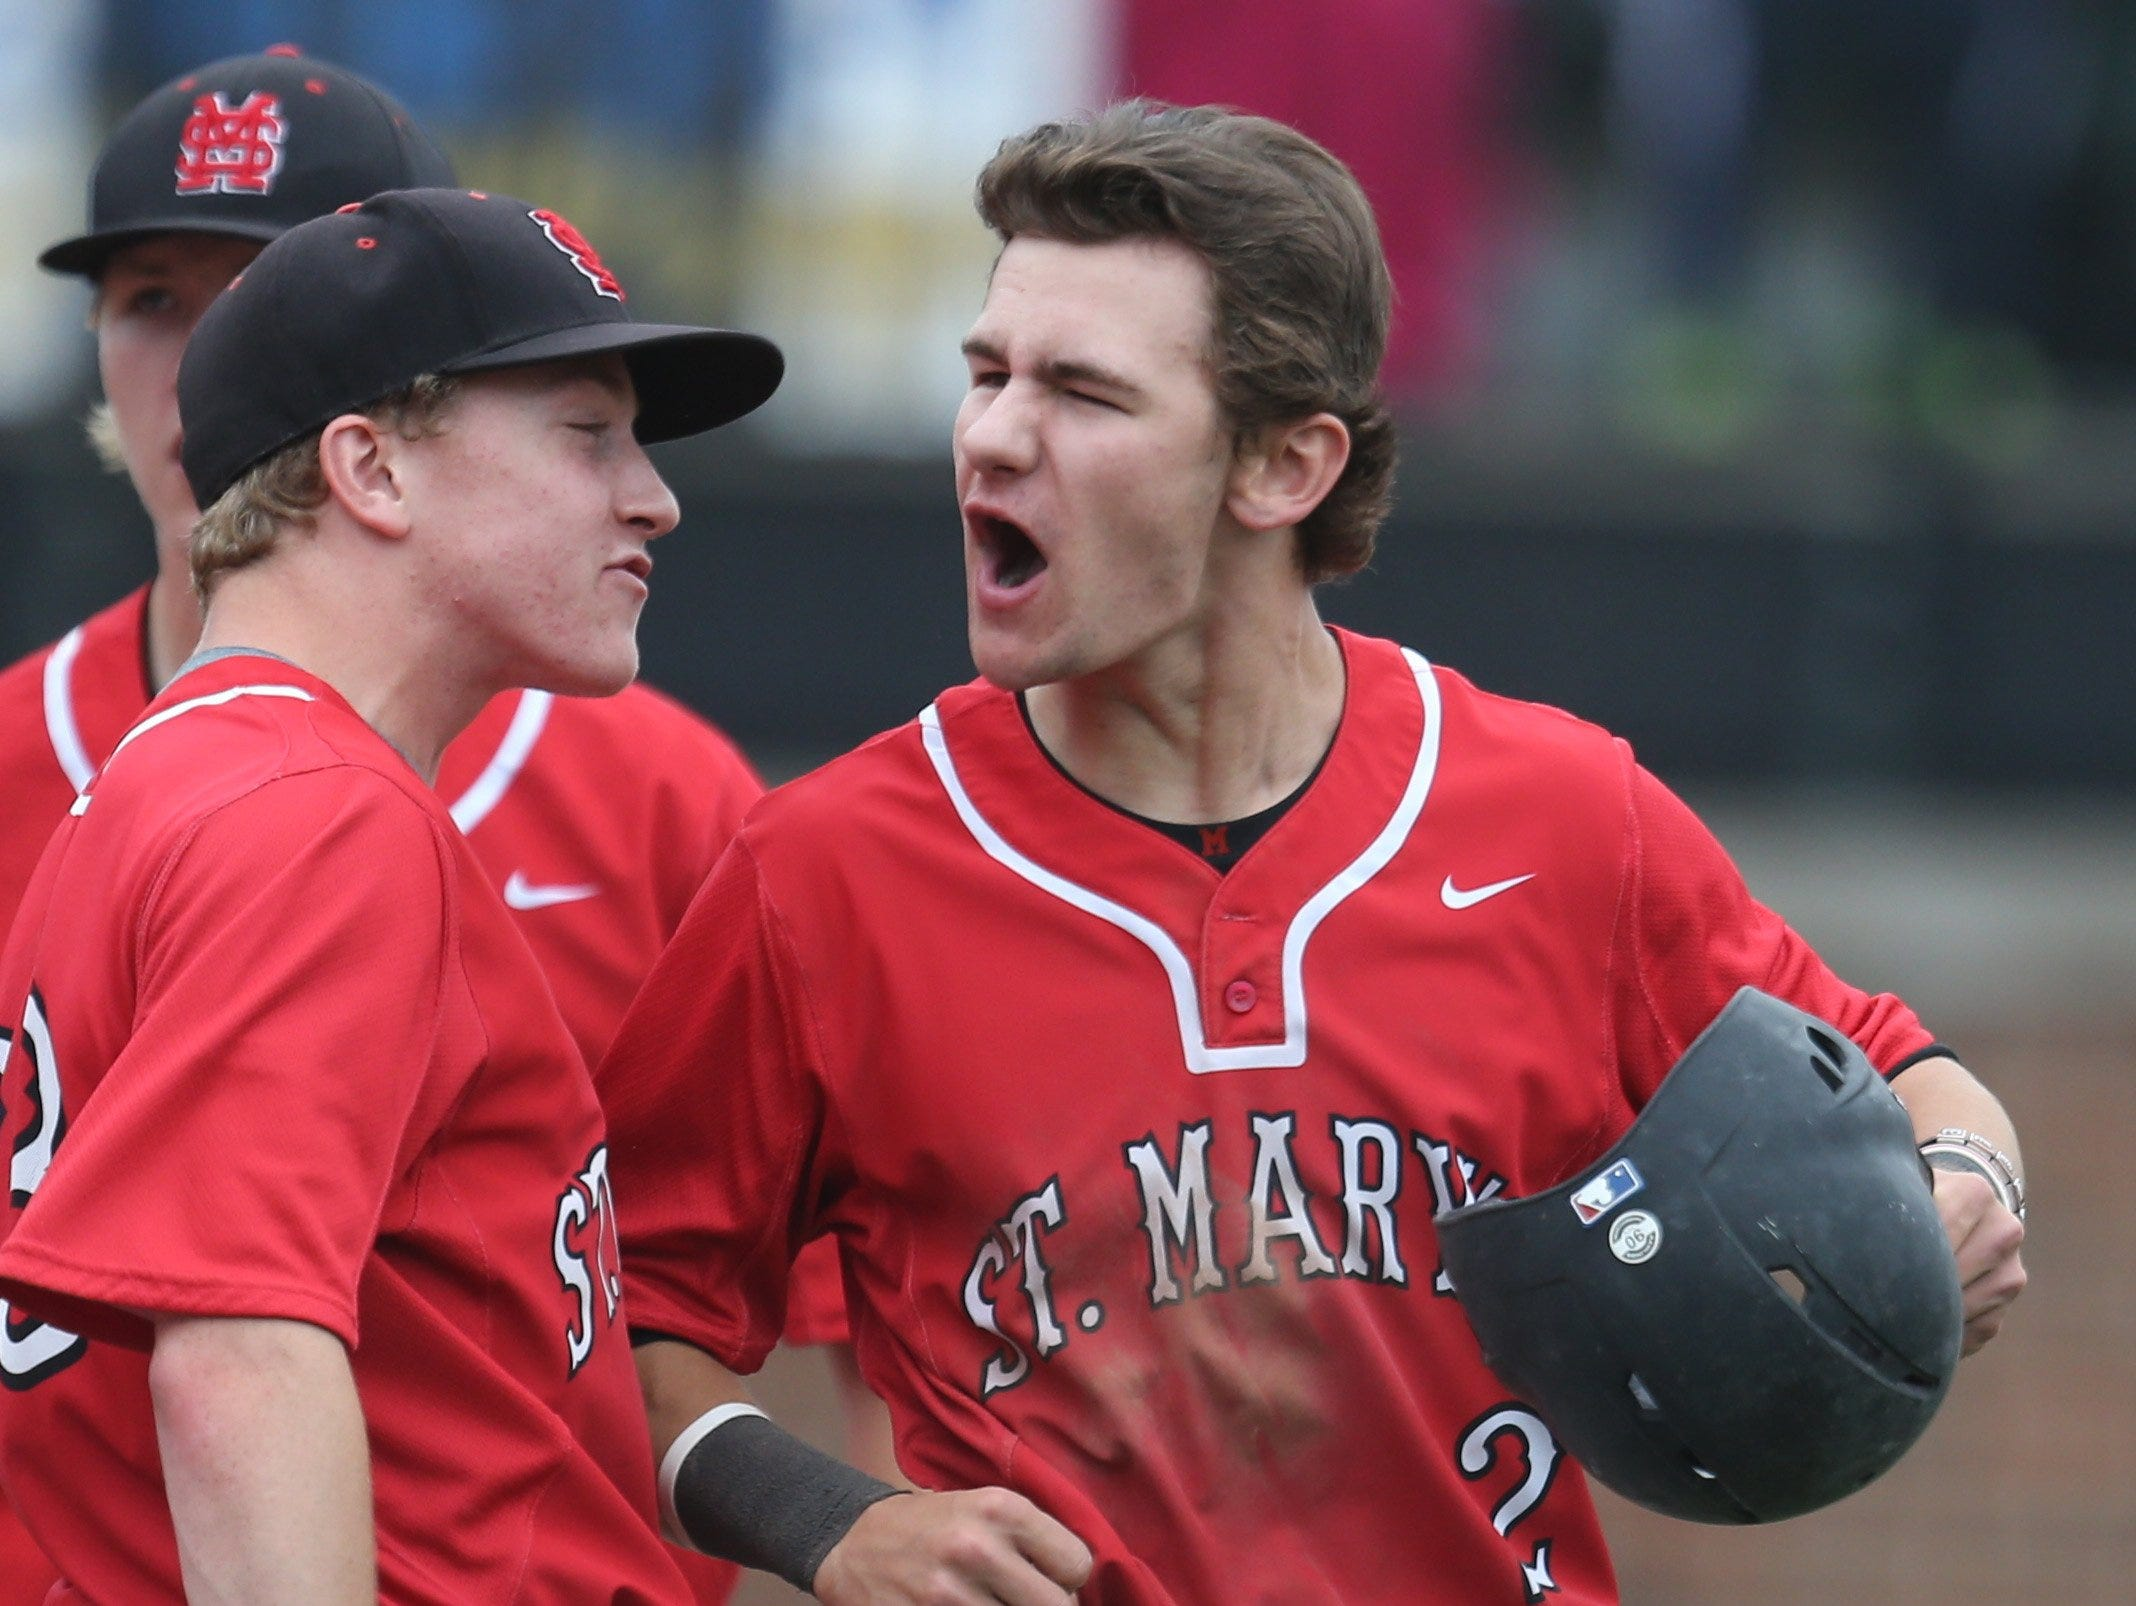 Orchard Lake St. Mary's Griffin Sheposh scores against Mt. Pleasant high school in the second inning in the Division 2 MHSAA State Championship game on Saturday, June 13, 2015.